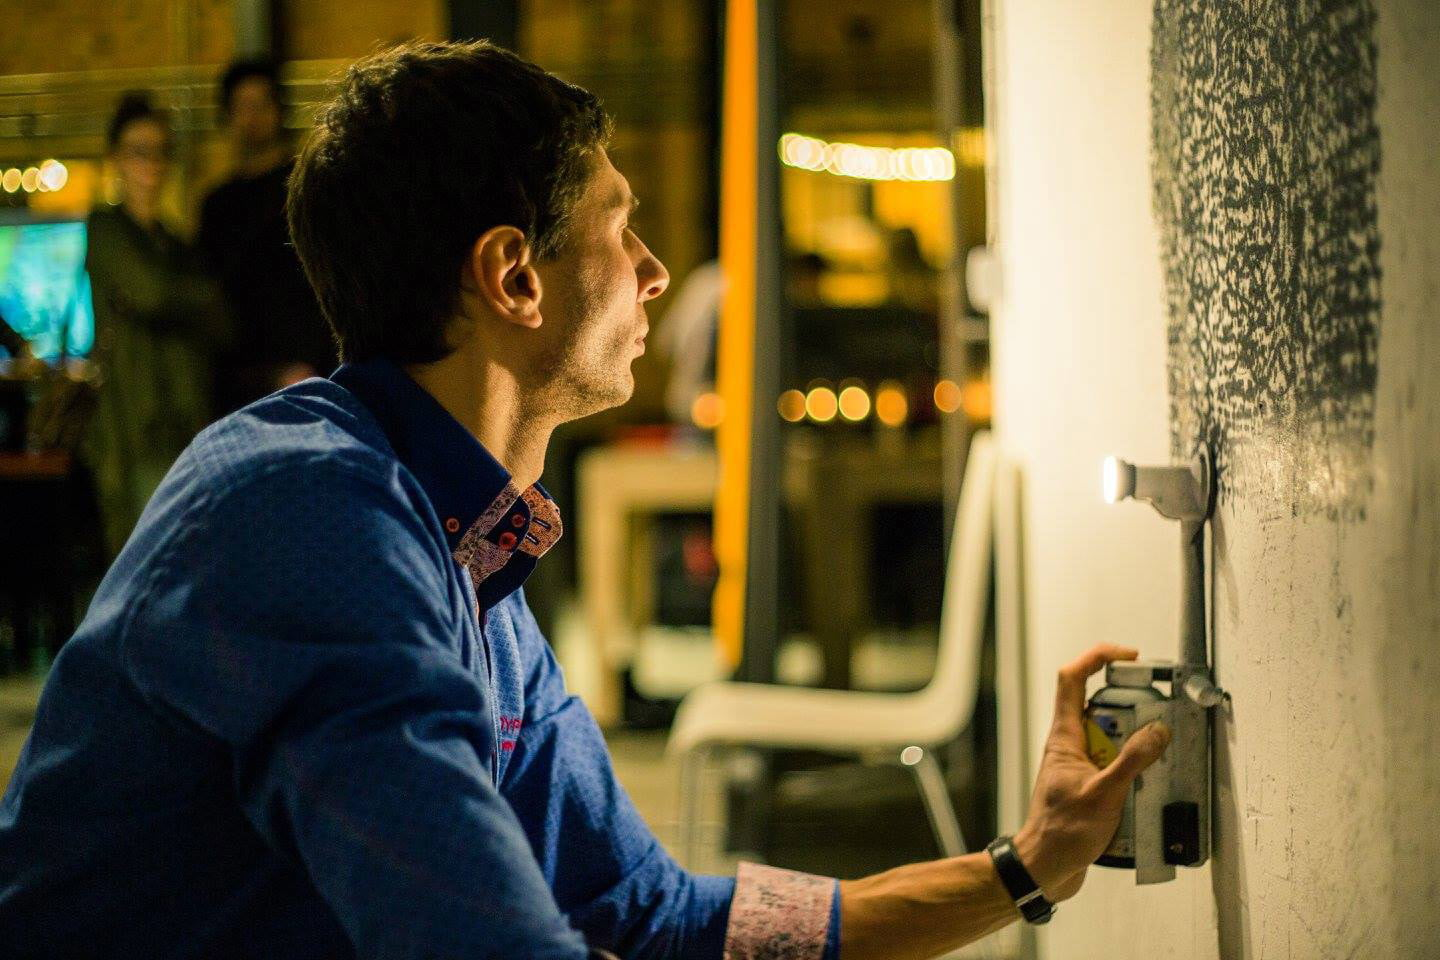 the sprayprinter makes graffiting your wall easy 3